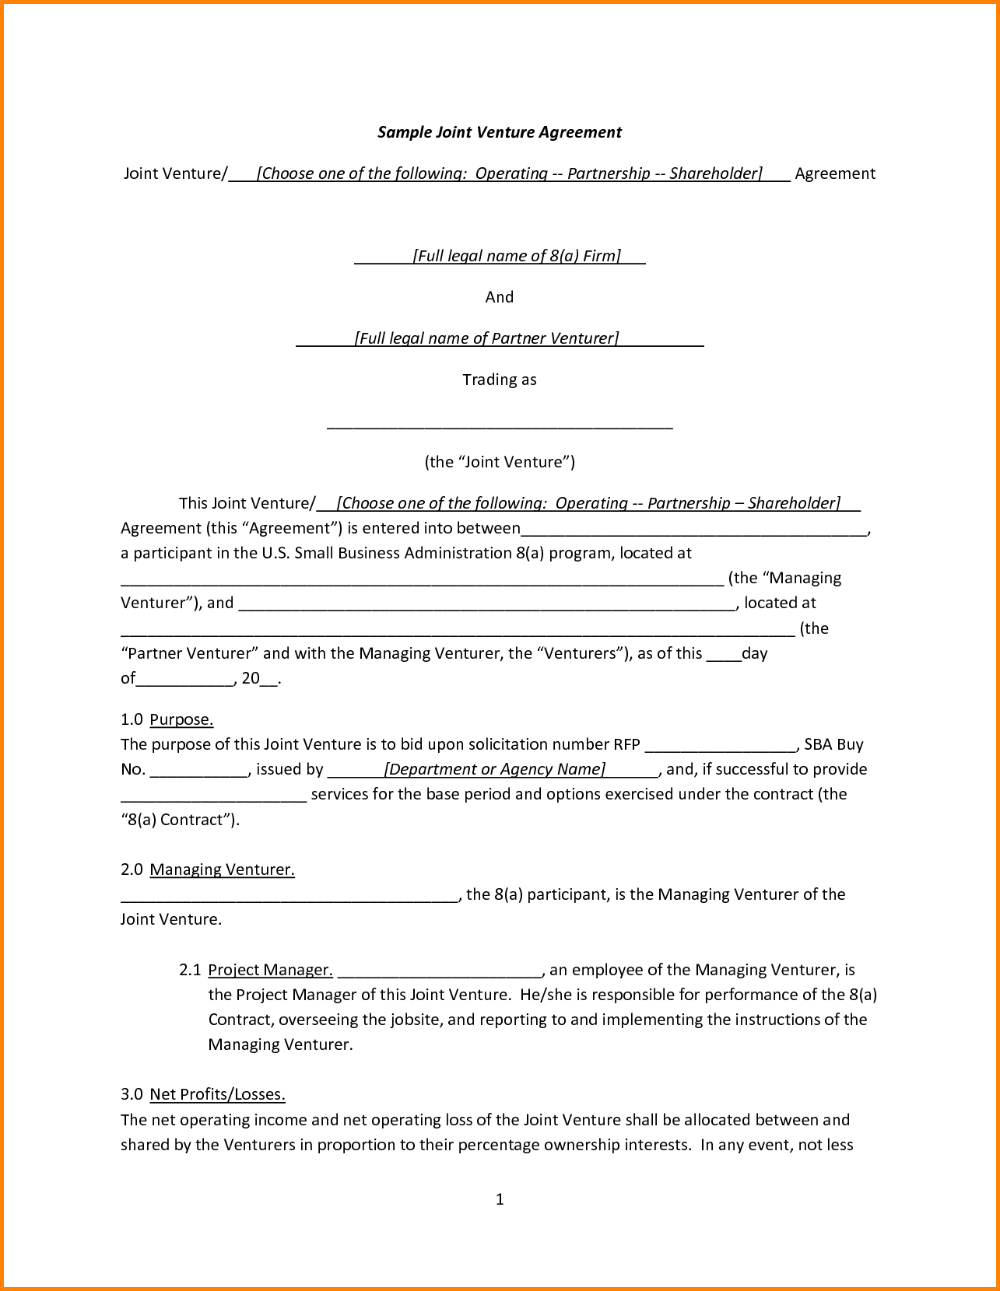 Exclusivity agreement template this exclusivity agreement template can be used by a vendor to secure exclusive rights to provide goods or … View 34 Business Simple Joint Venture Agreement Template